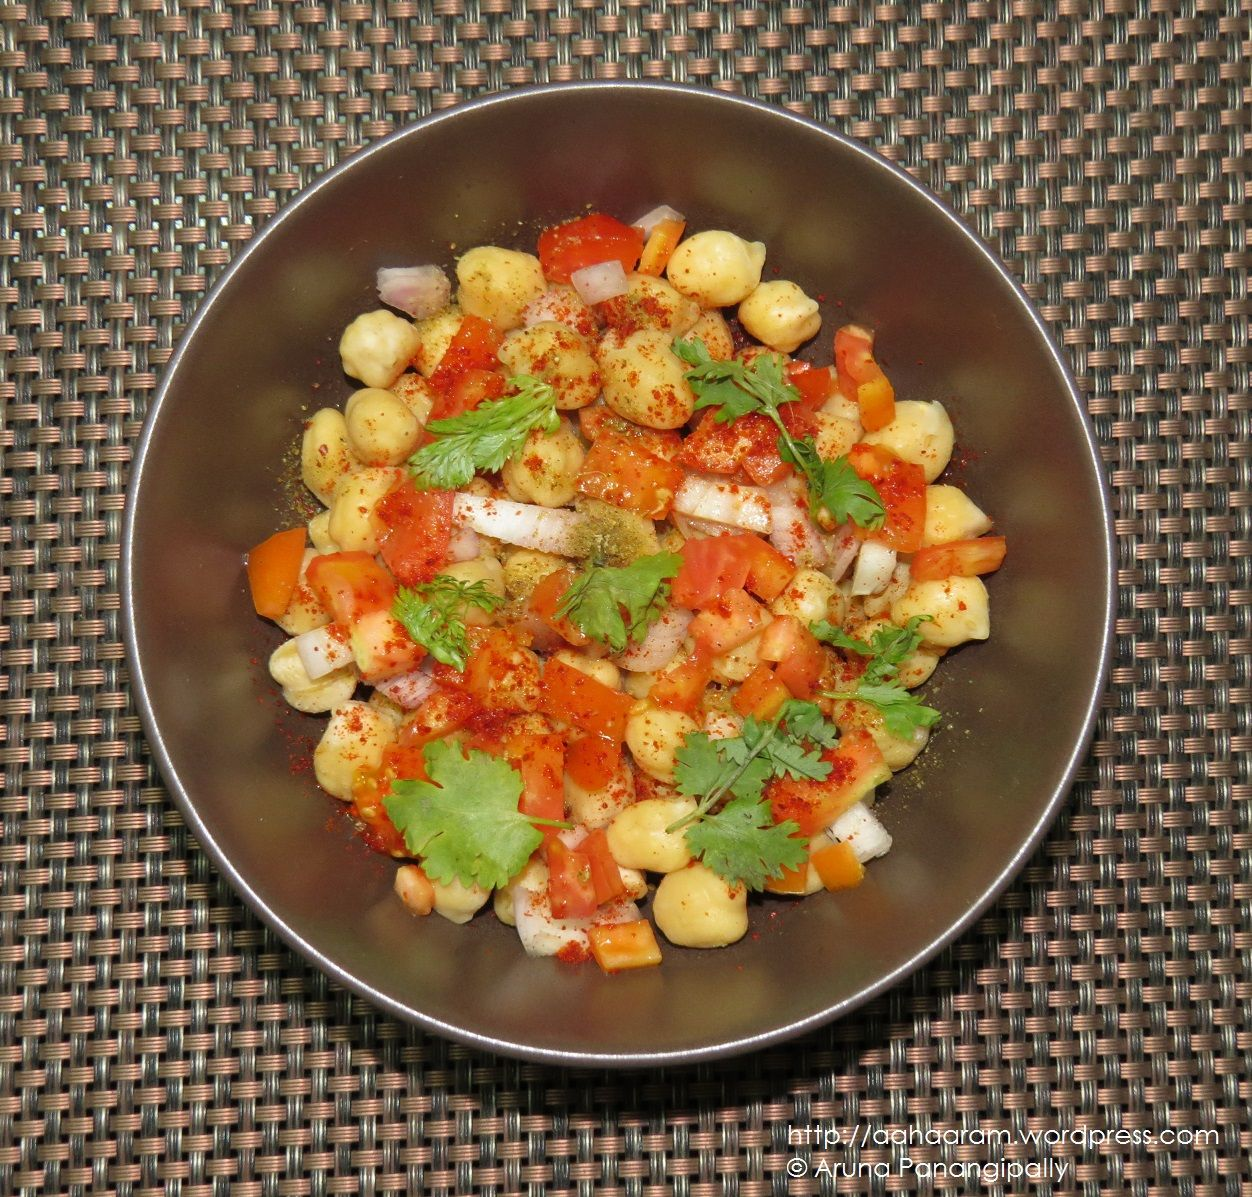 Chickpea Salad No Oil, Low Calorie, High Protein, High